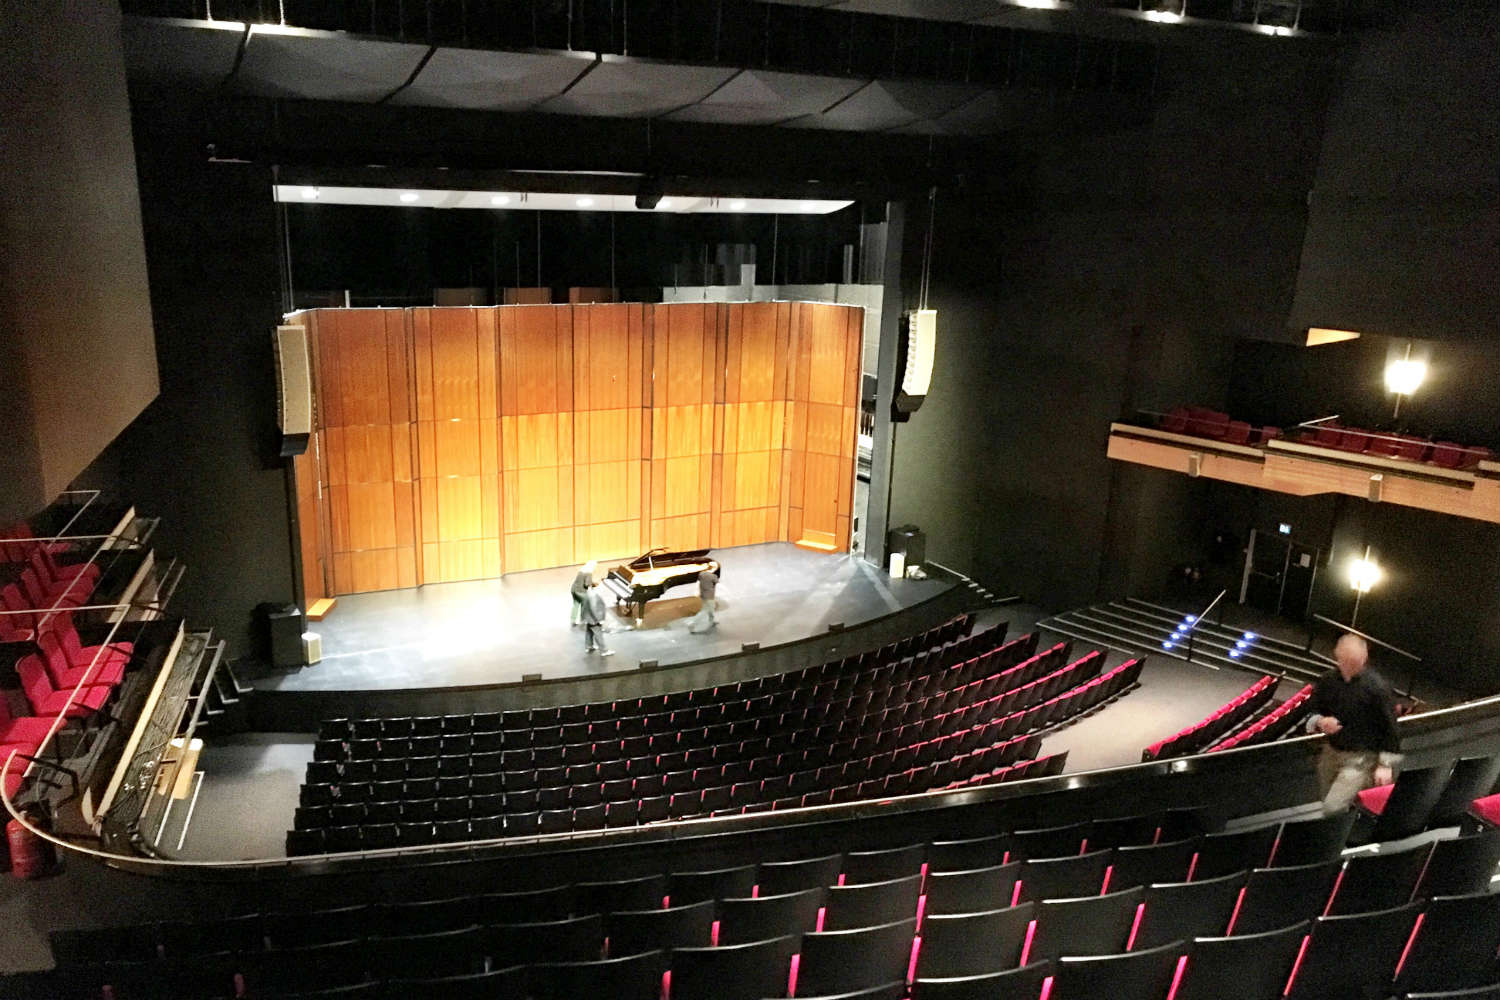 Musical Theater Basel in Basel, Switzerland. Acousting consulting and treatment by WSDG in Europe. Main wooden shell on stage